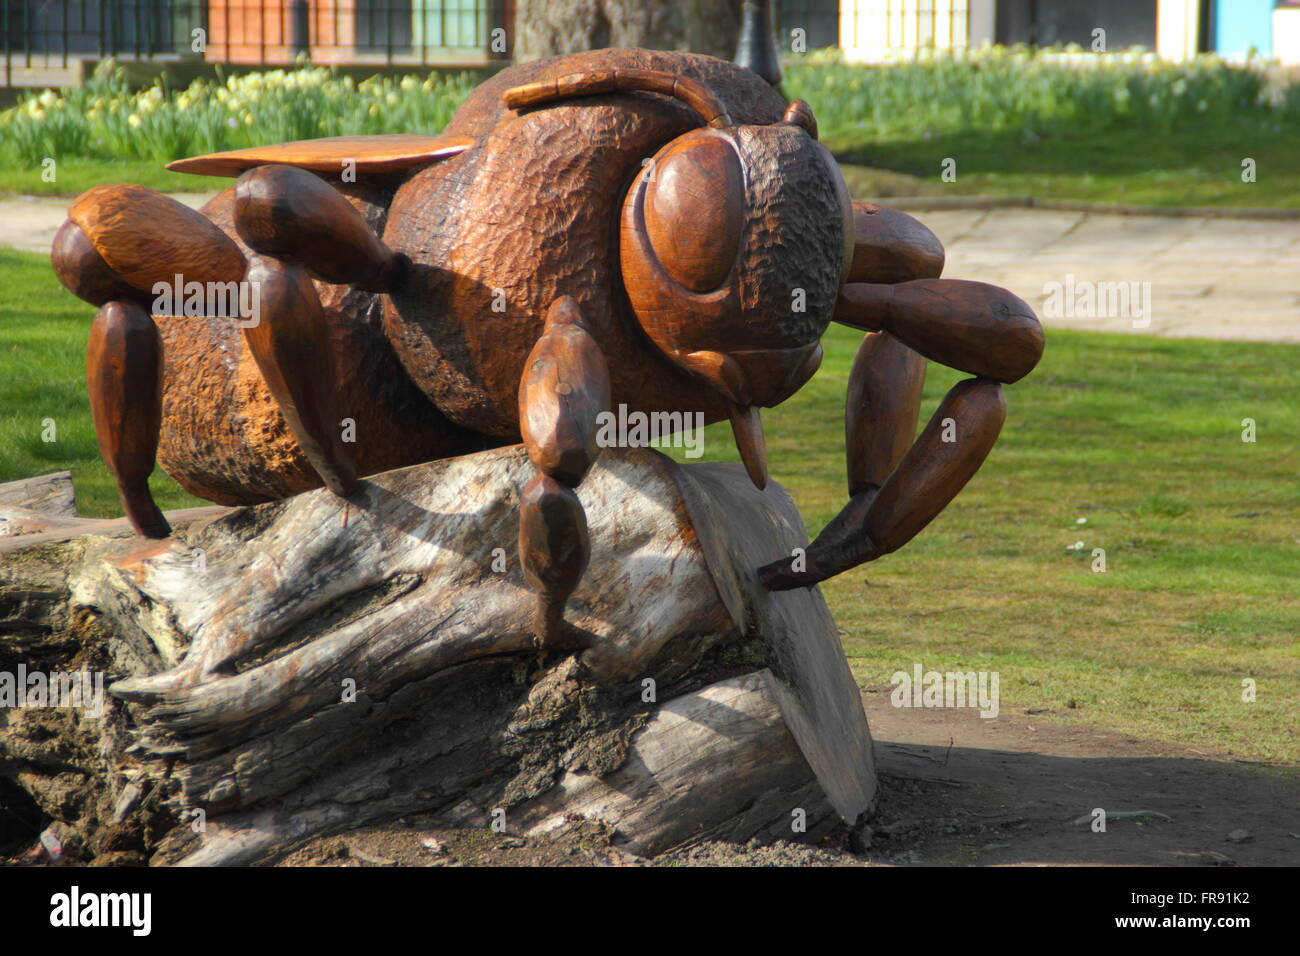 A wooden queen bee sculpture shaped from a fallen elm tree by artist, Andrew Frost to mark the insect's role - Stock Image